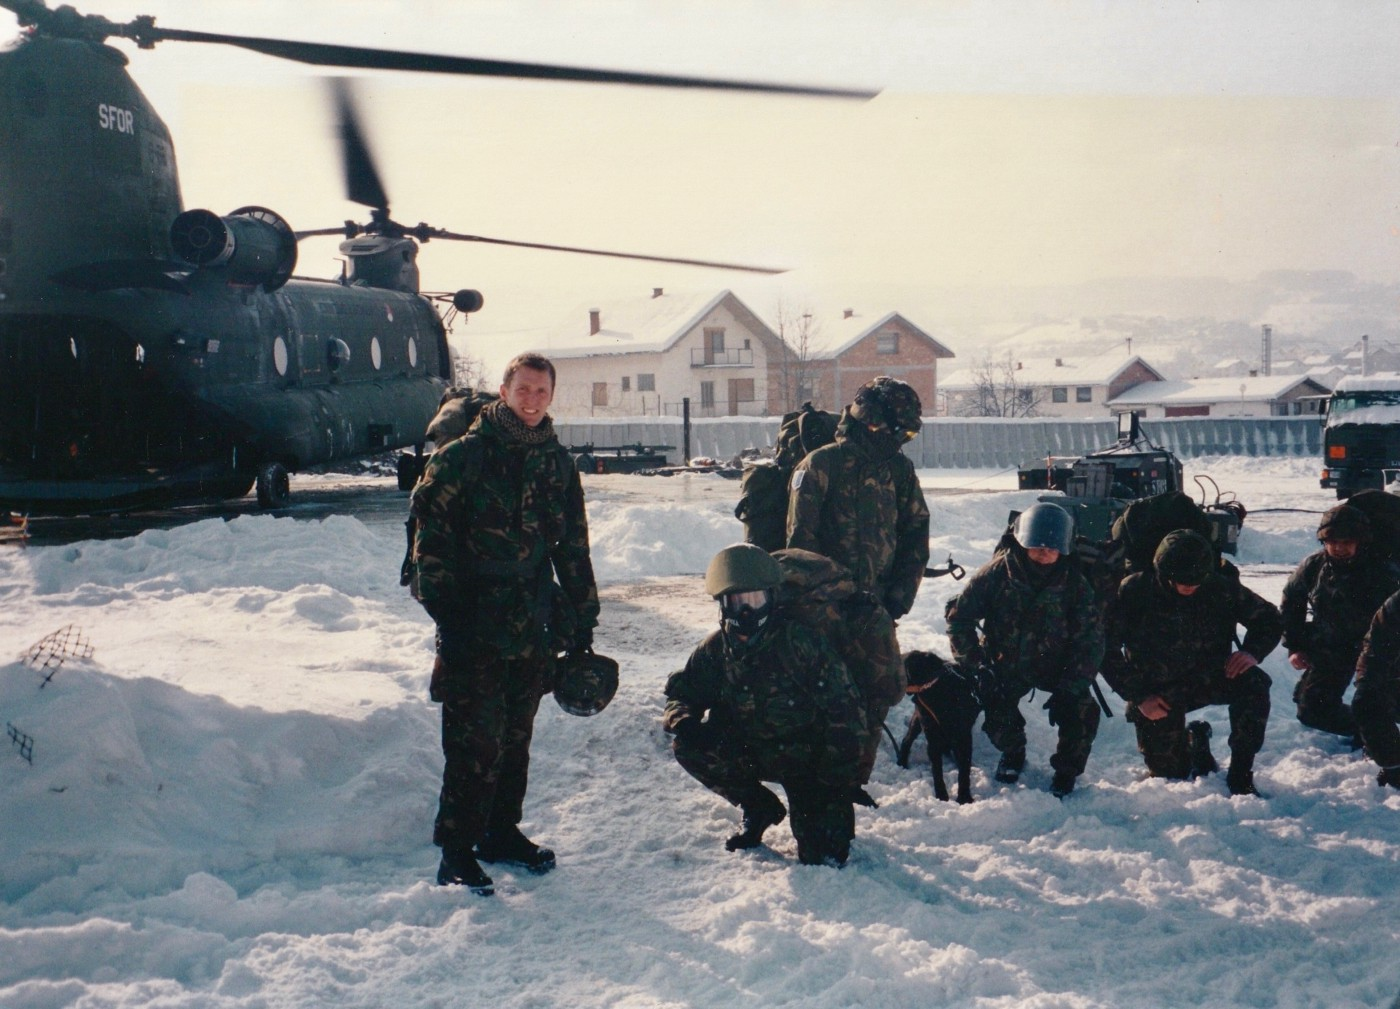 A photo of the author next to a helicopter in Bosnia.